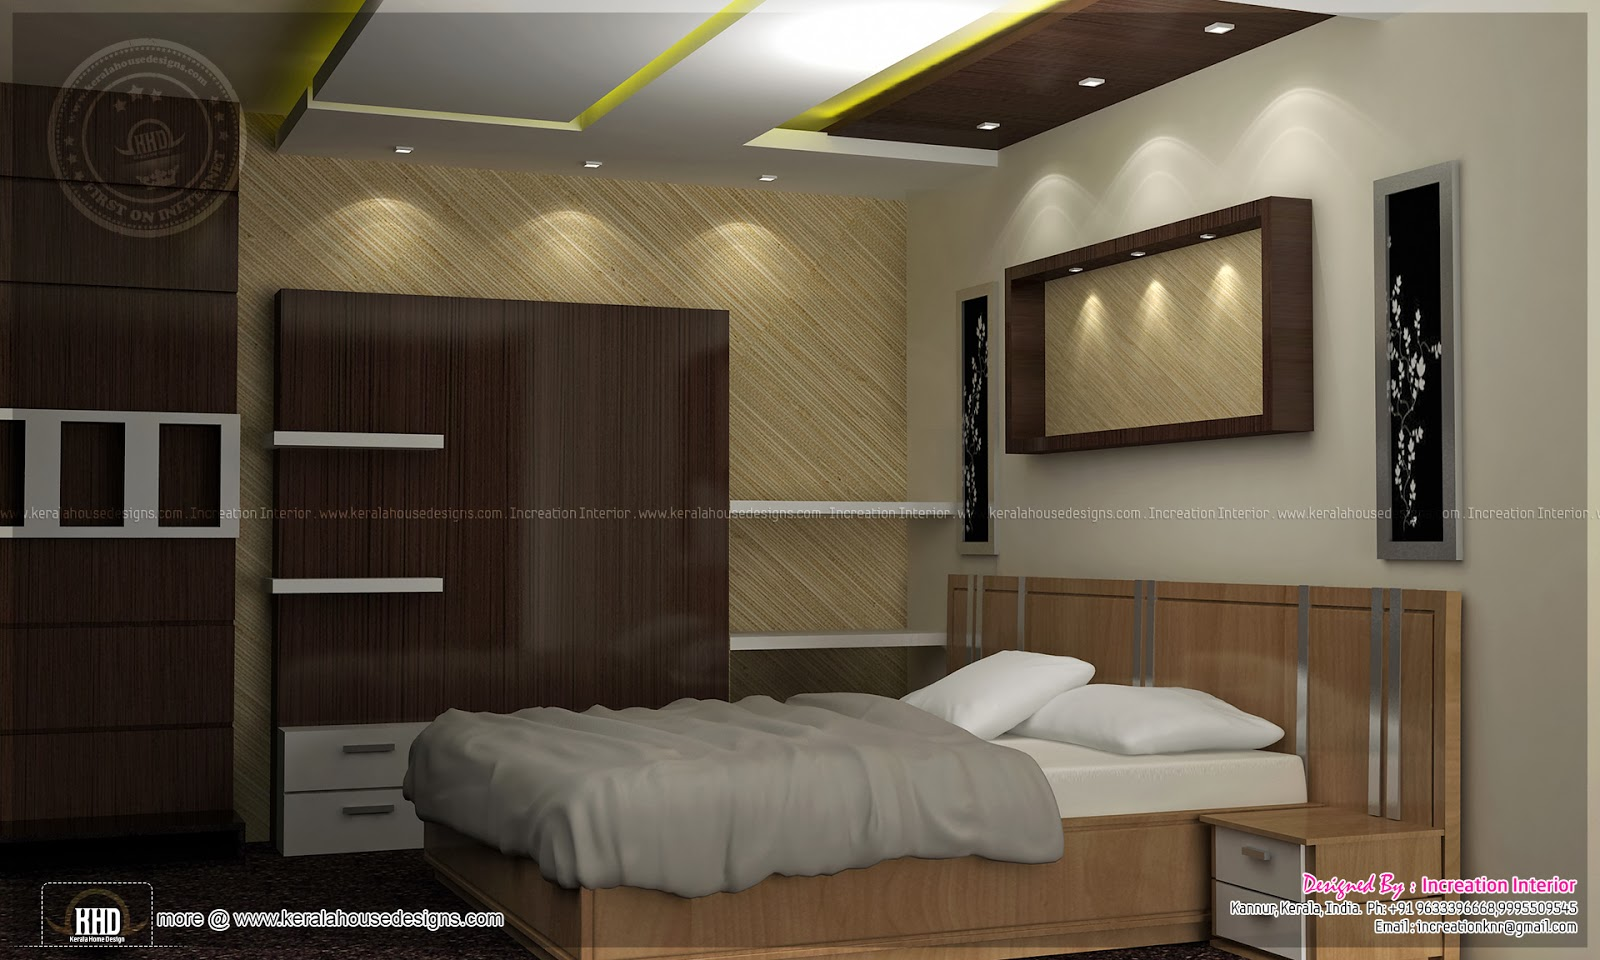 Bedroom interior designs kerala home design and floor plans for Interior design ideas for bedroom